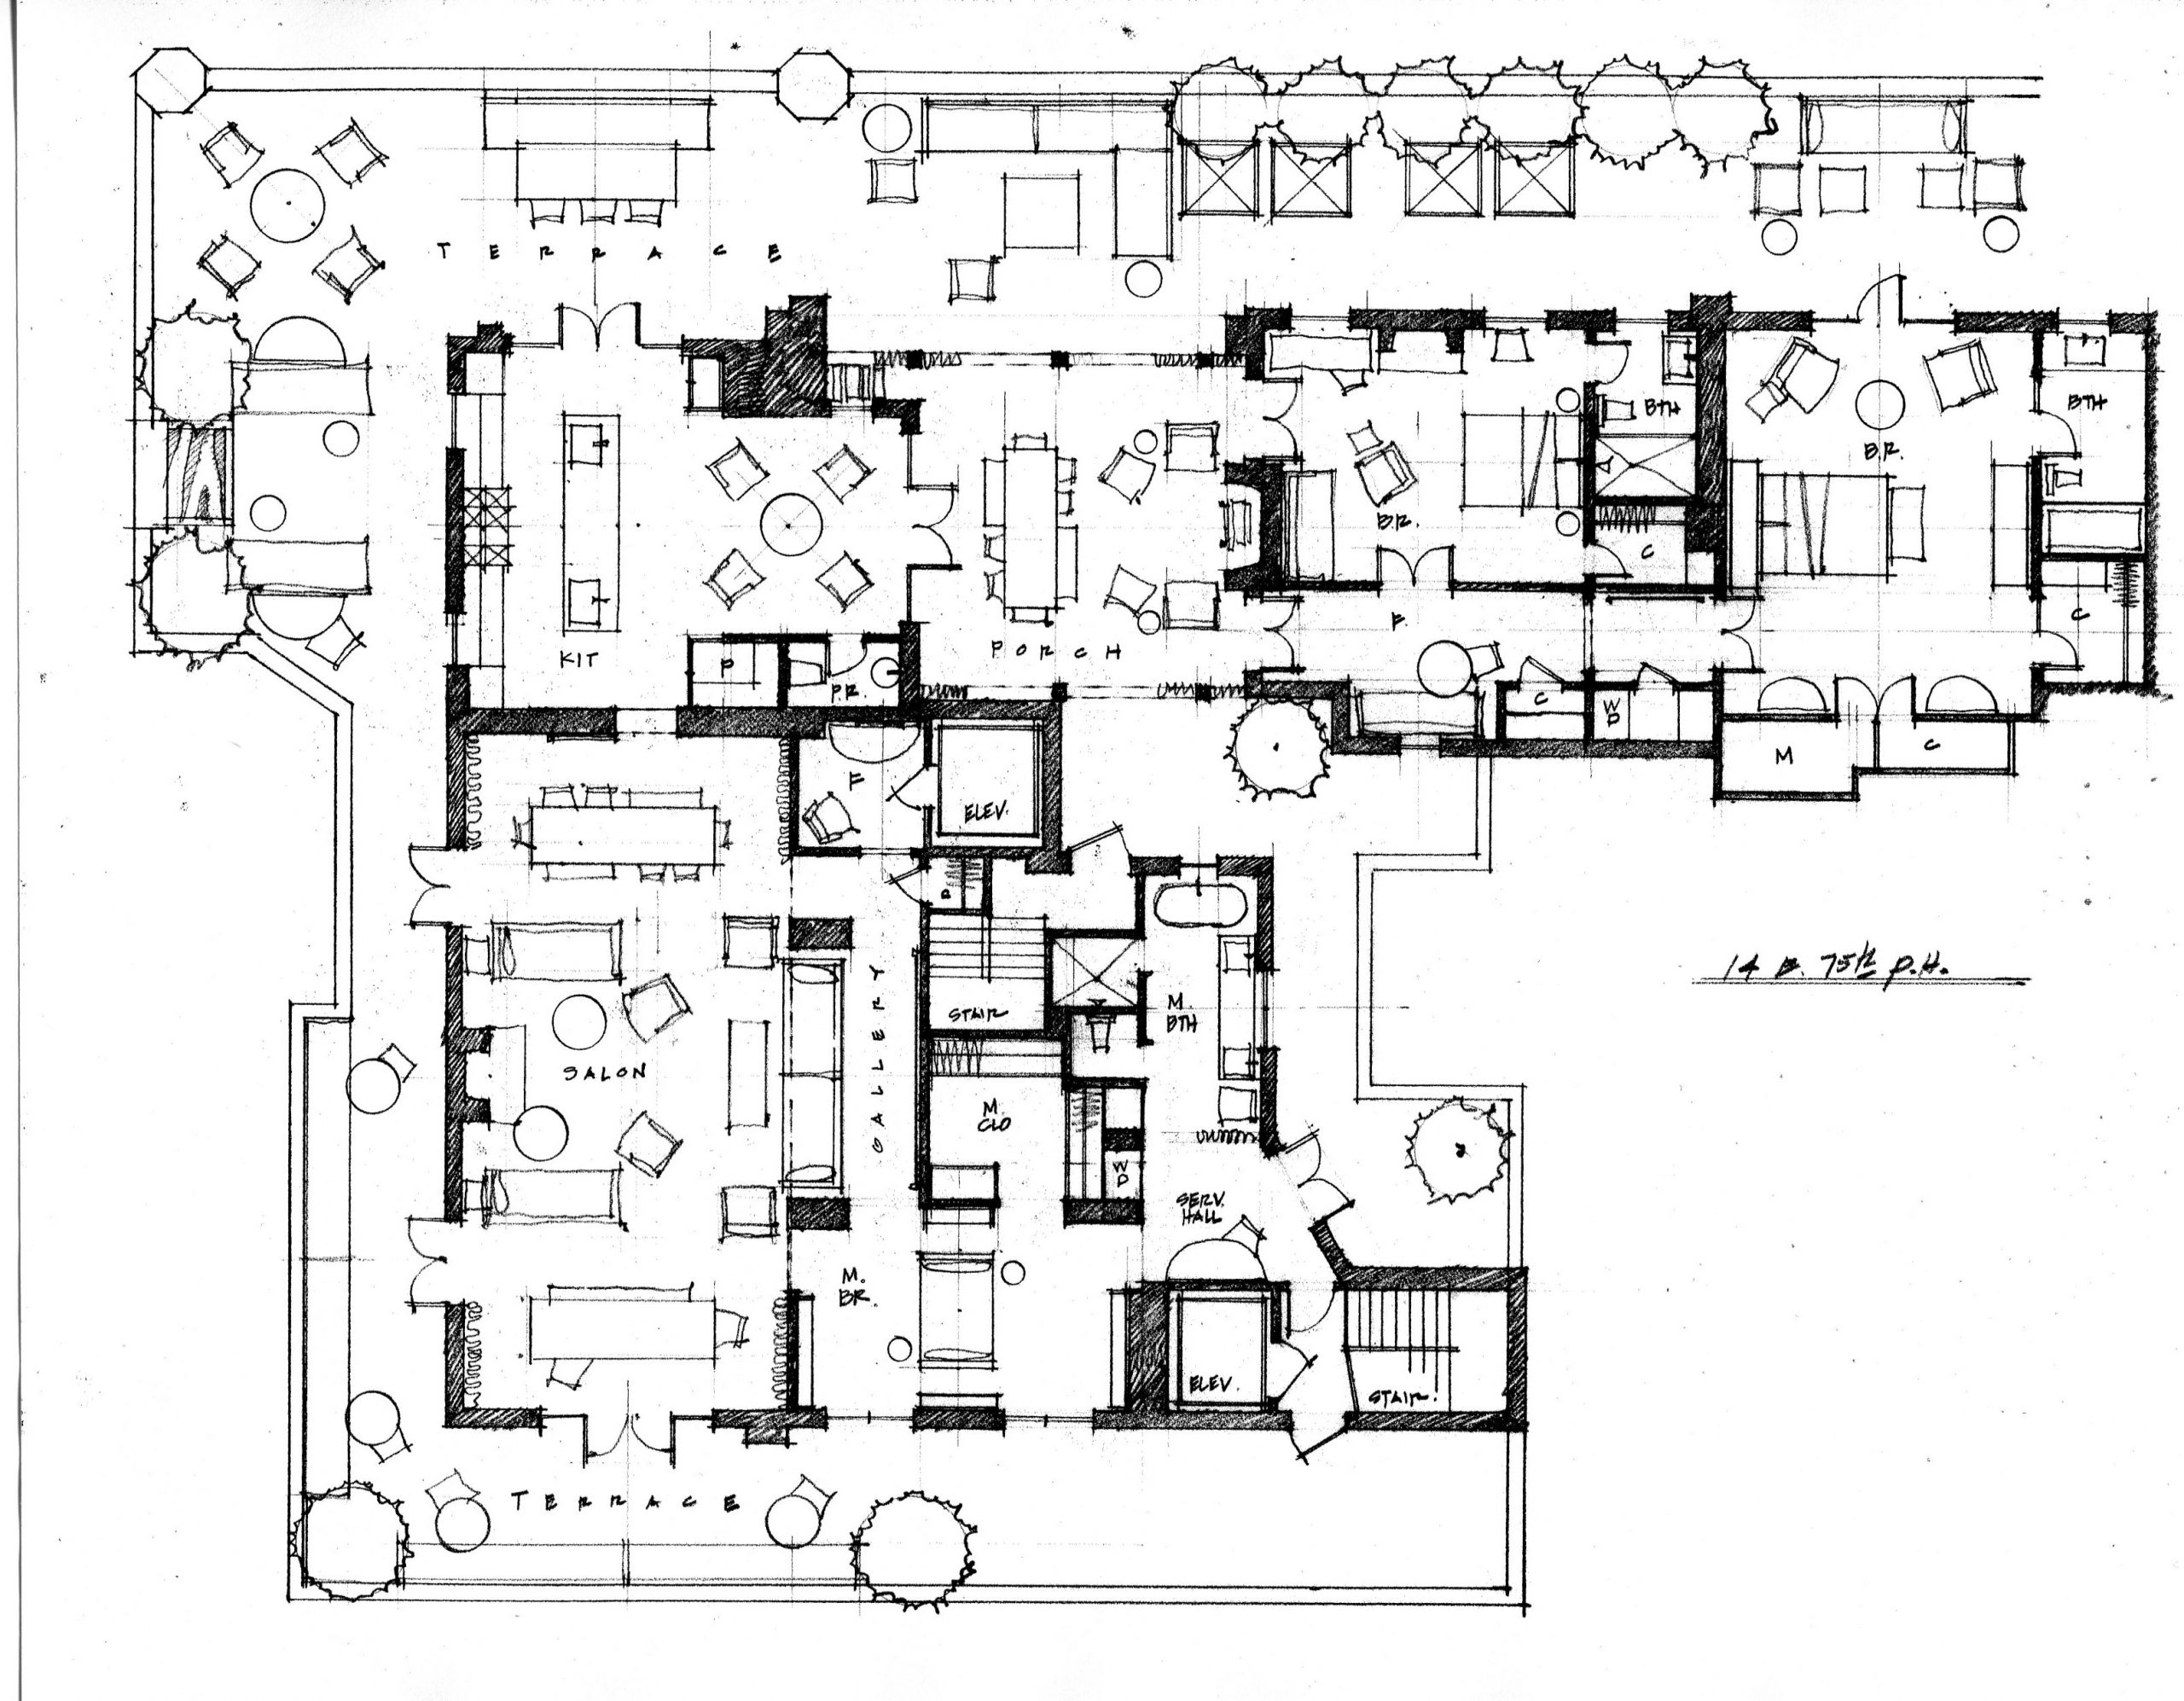 McAlpine Journal: Floor Plan